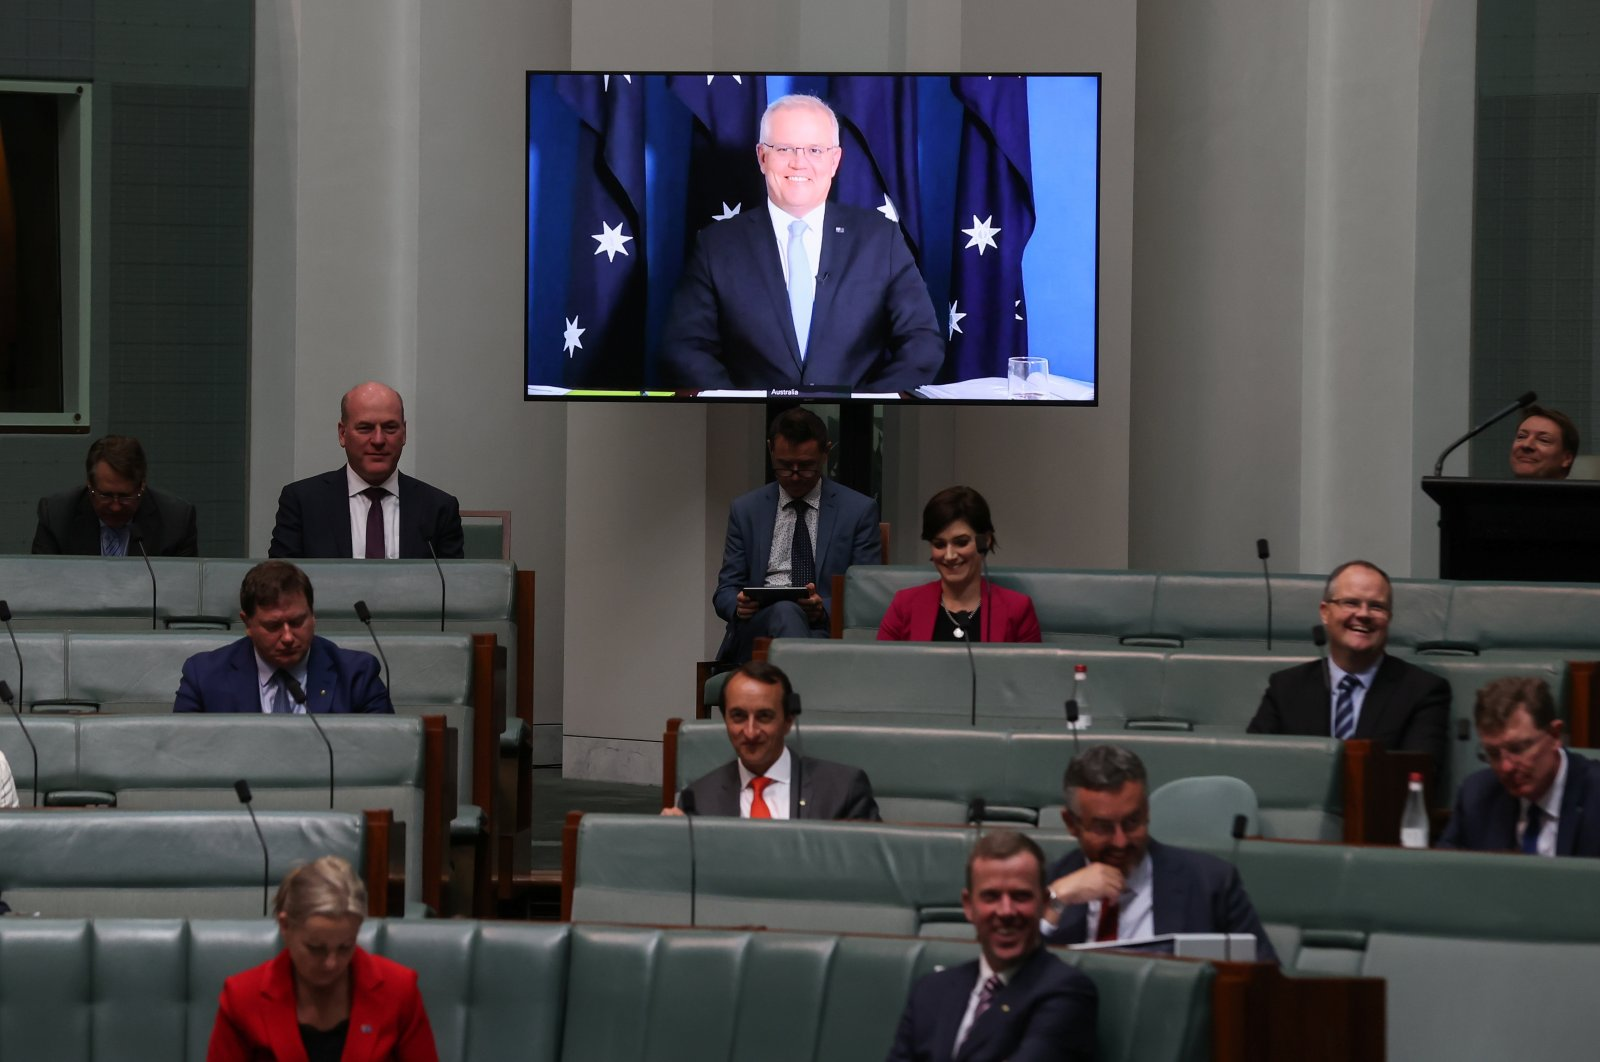 Australia's Prime Minister Scott Morrison appears via videoconference from his quarantine at the Lodge, during Question Time in the House of Representatives at Parliament House in Canberra, Australia, Nov. 30, 2020. (Reuters Photo)